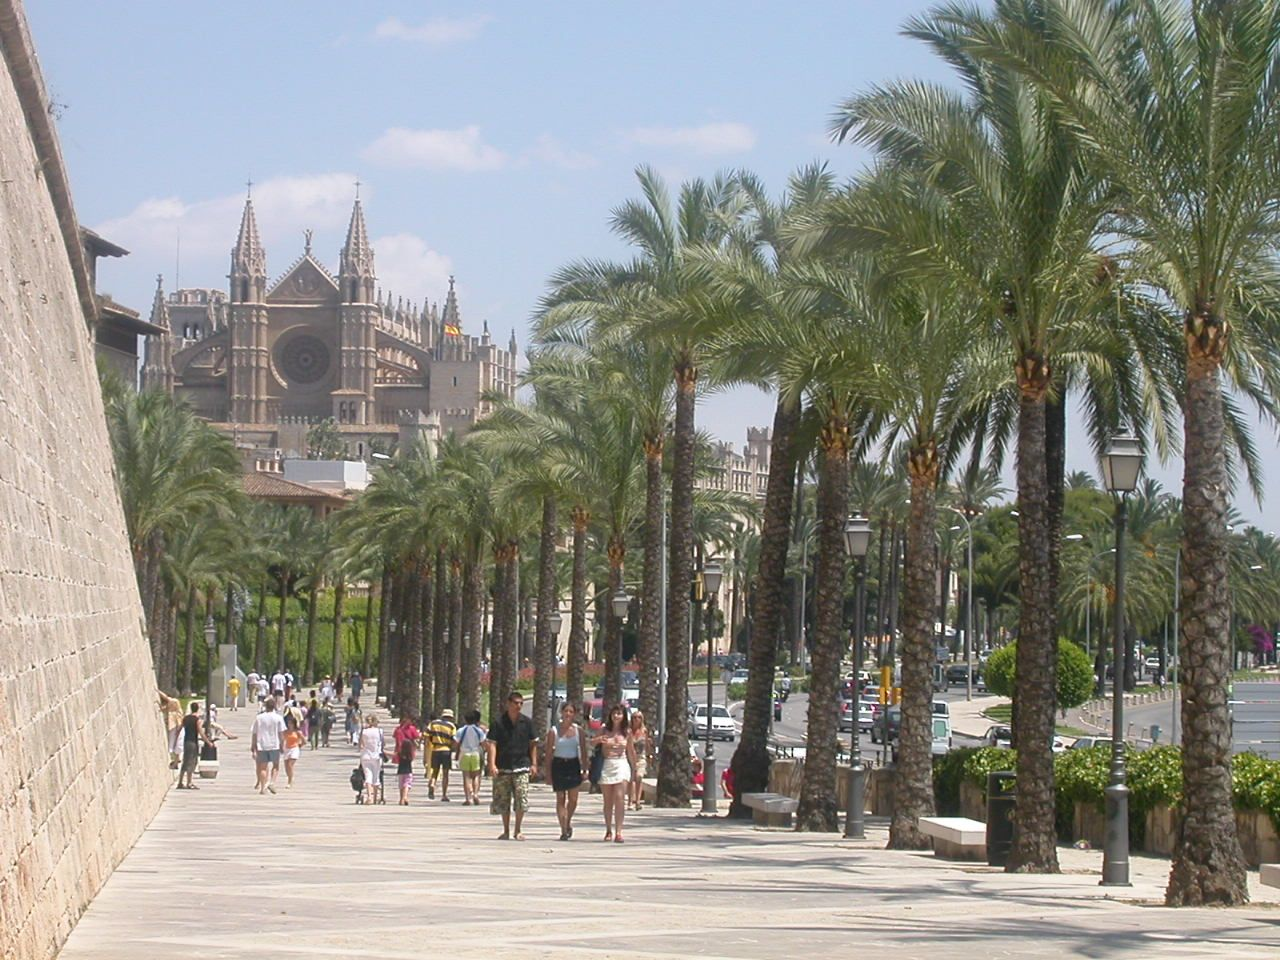 This is one of my most favorite places in the world. The Paseo Martimo in Palma de Mallorca, Spain